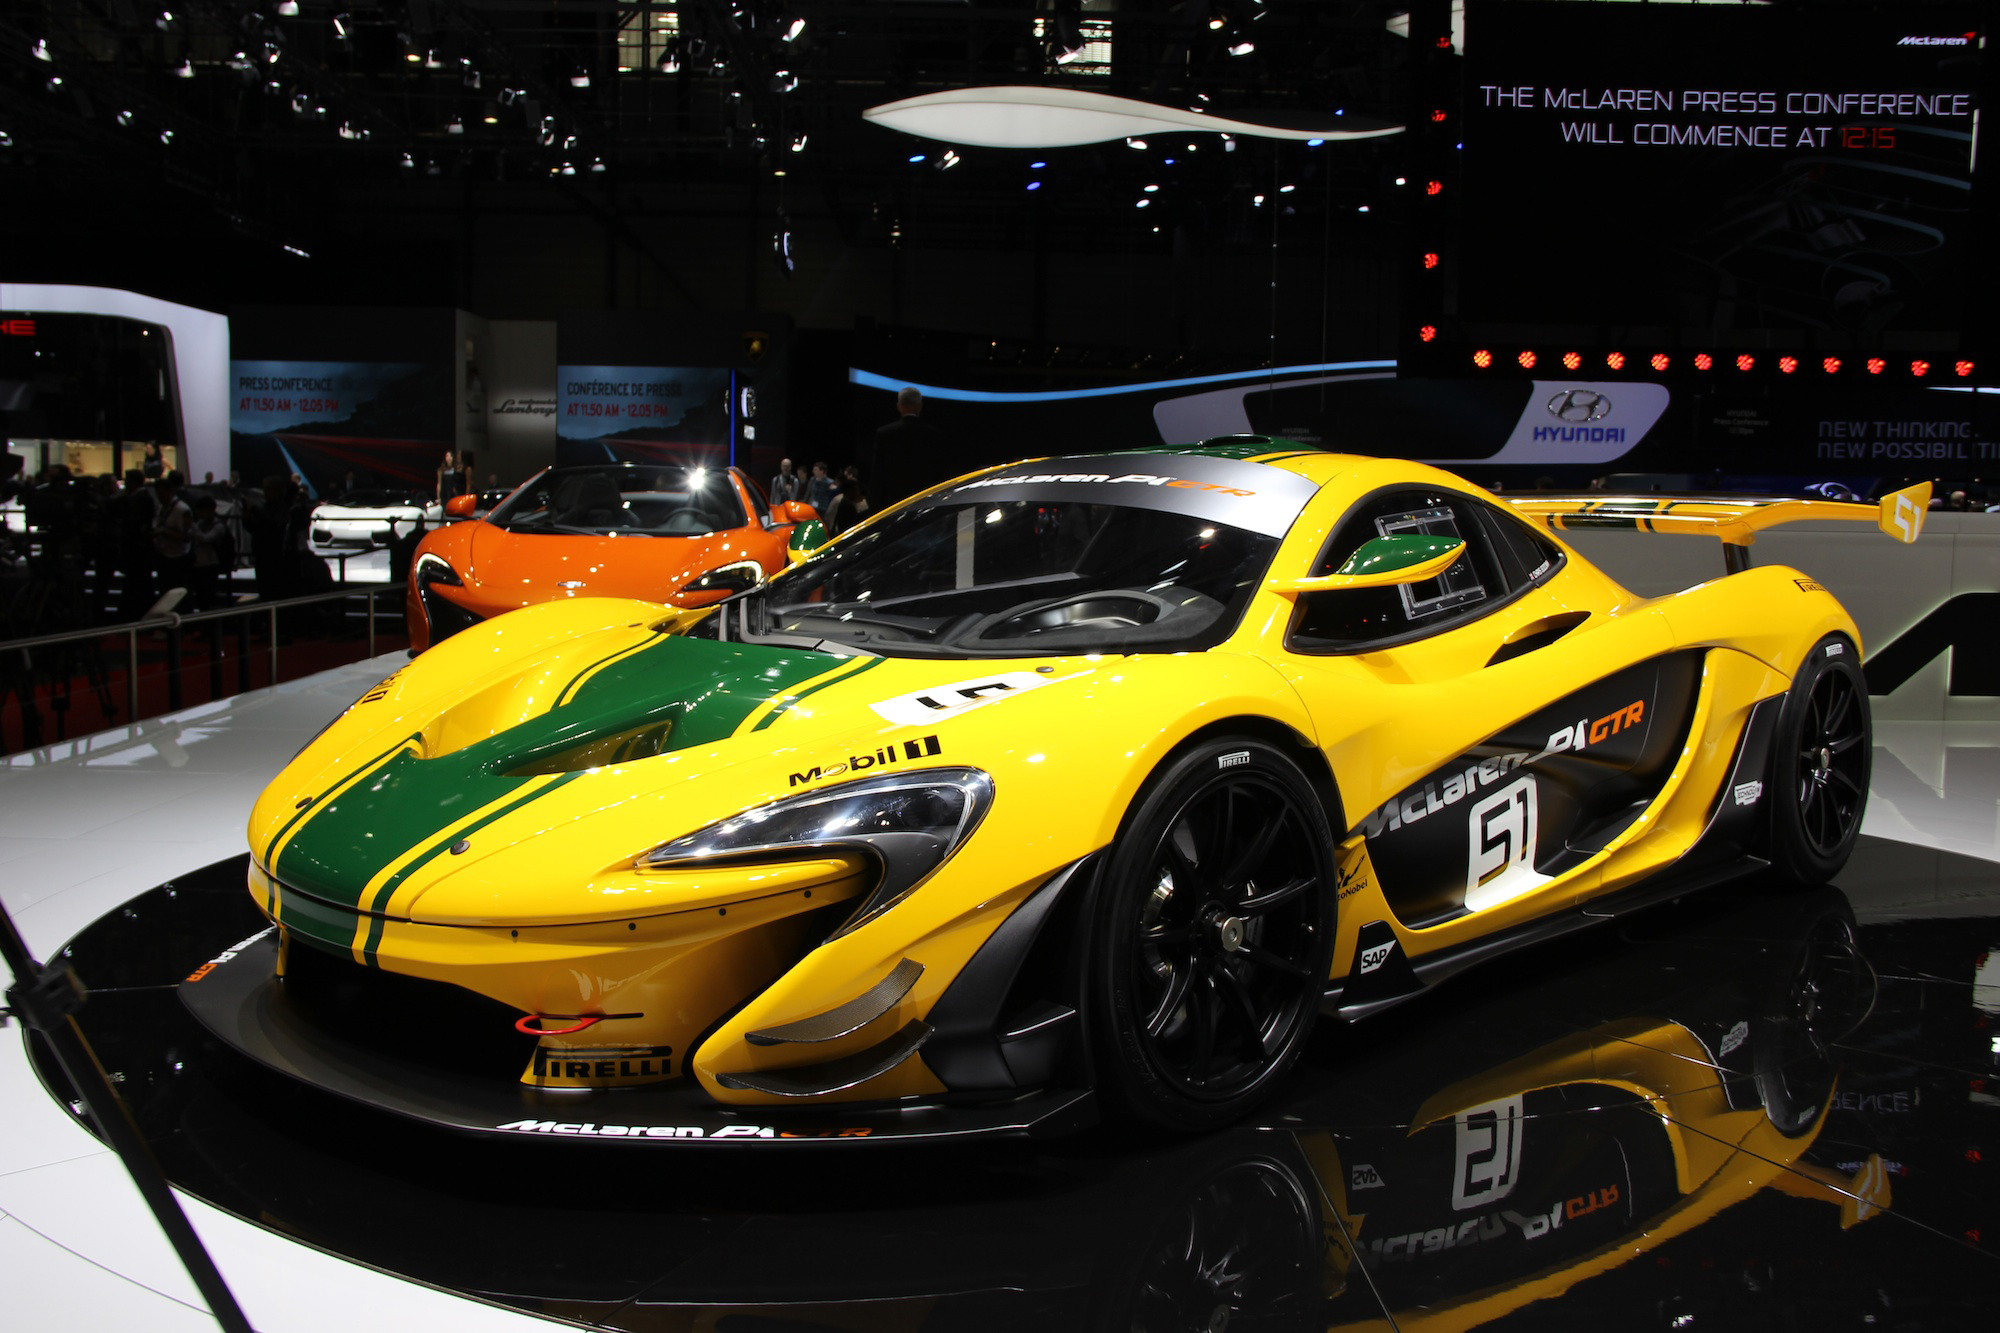 street legal mclaren p1 gtr coming report mclaren life. Black Bedroom Furniture Sets. Home Design Ideas